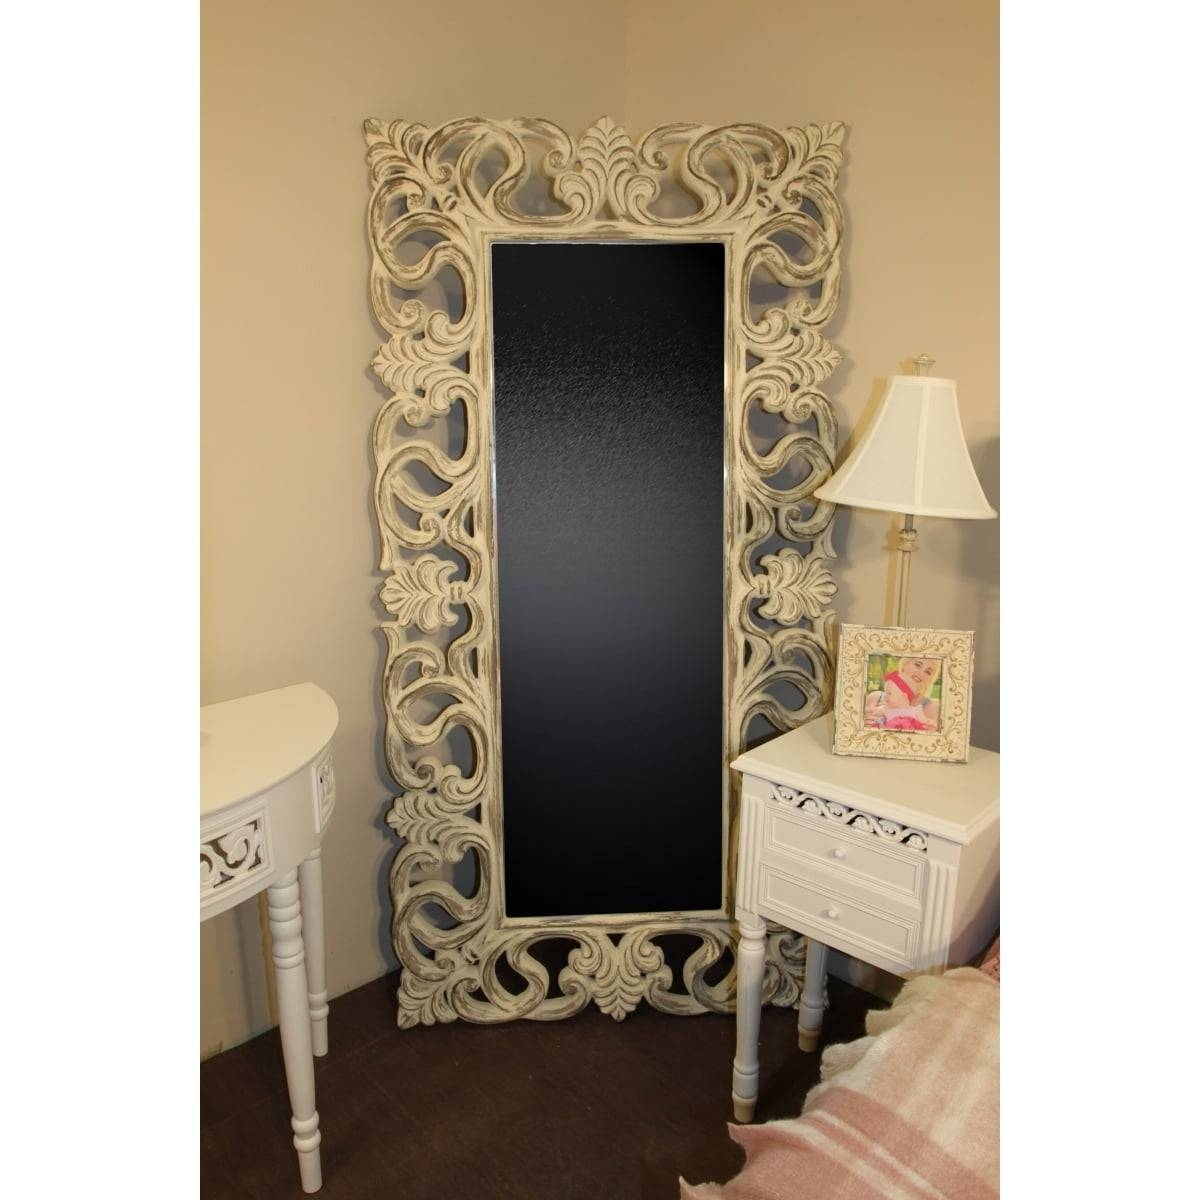 Full Length Mirror, Shabby Chic | Swanky Interiors pertaining to Shabby Chic Full Length Mirrors (Image 16 of 25)